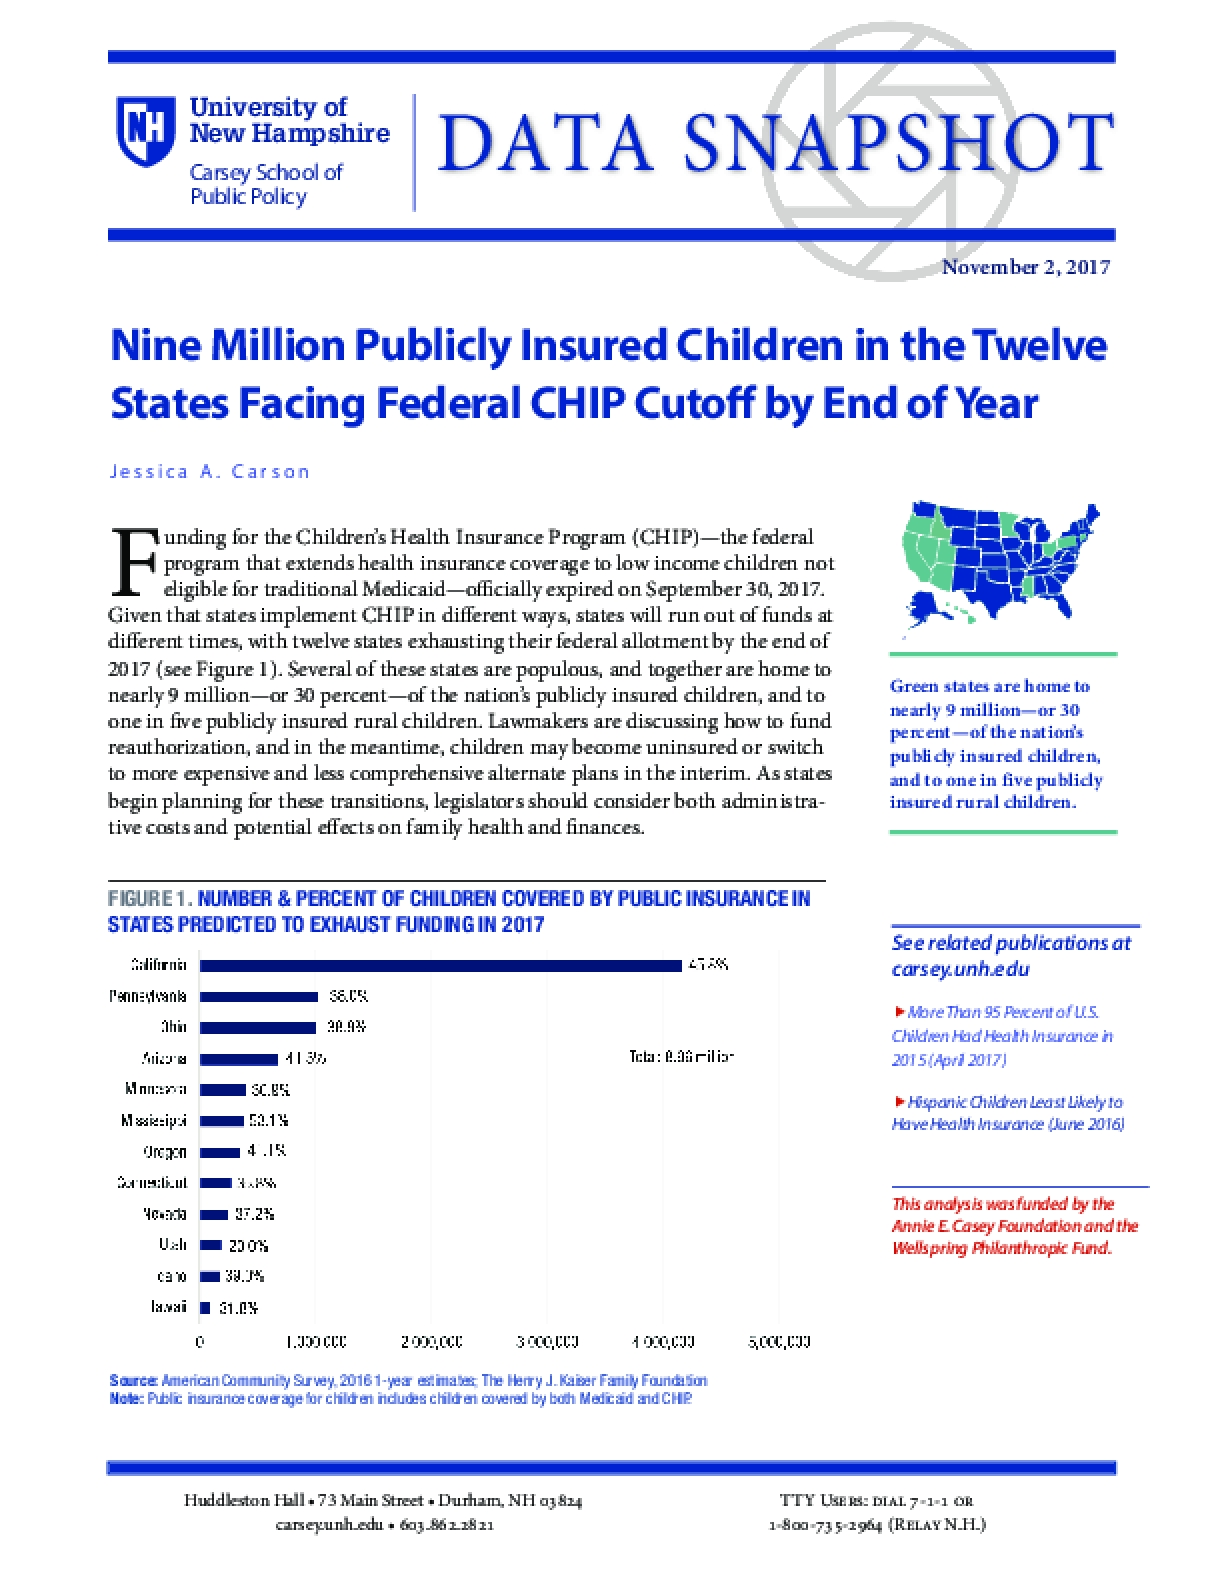 Data Snapshot: Nine Million Publicly Insured Children in the Twelve States Facing Federal CHIP Cutoff by End of Year